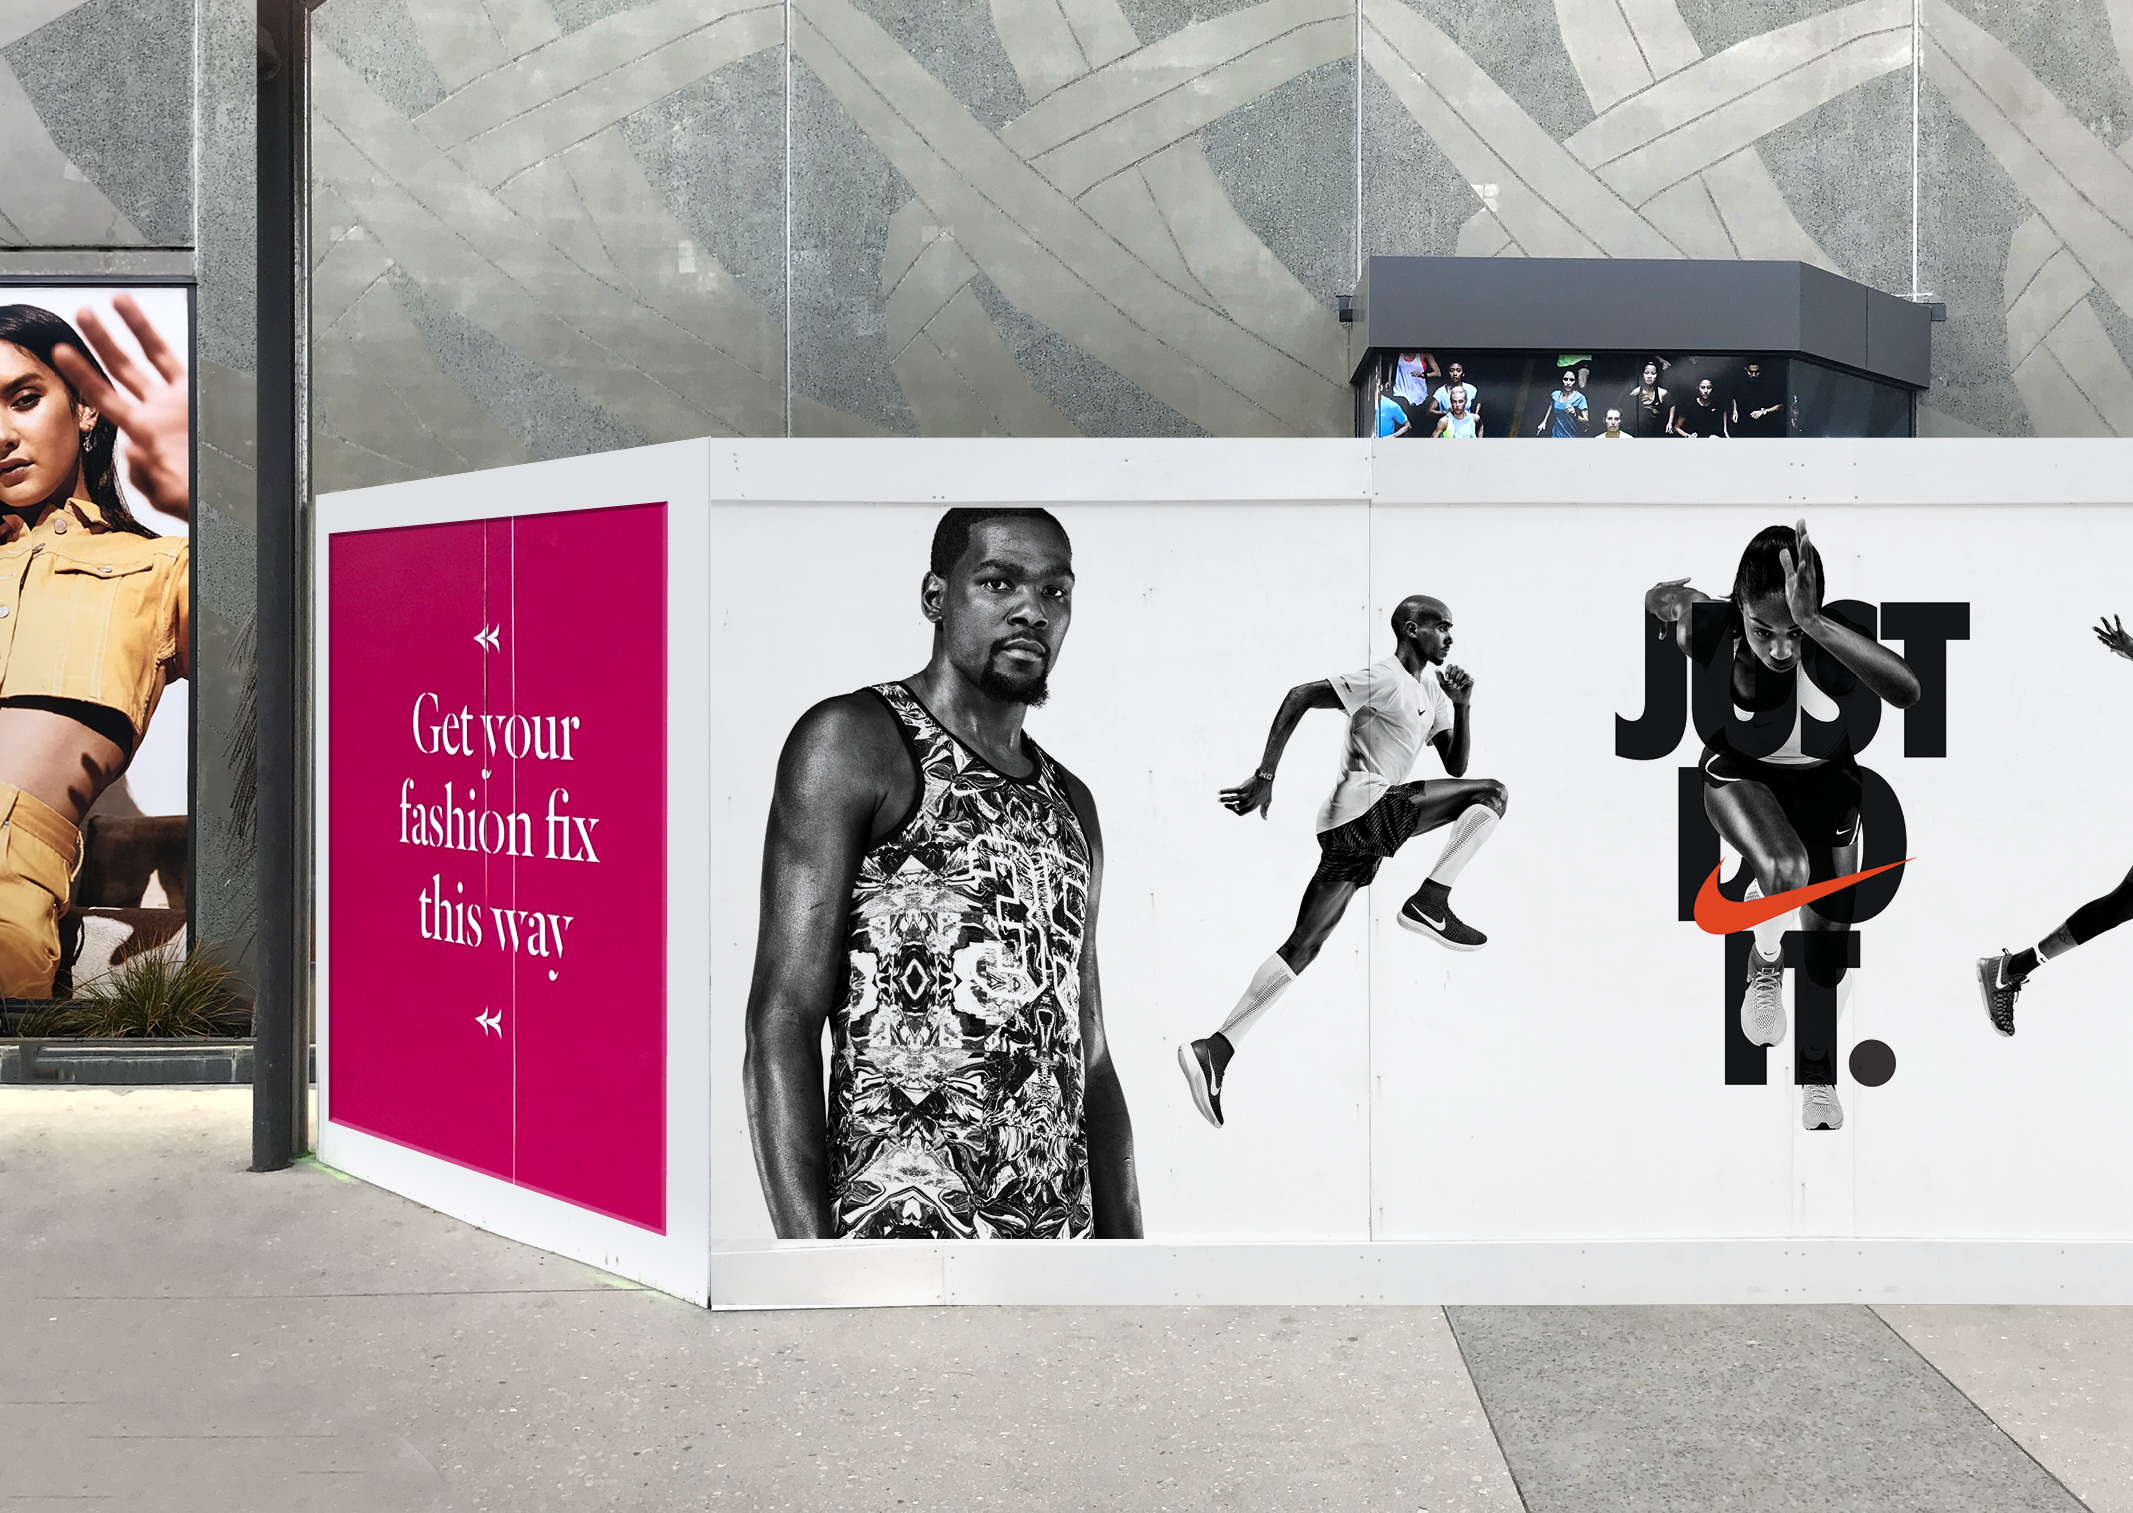 Dramatic Sylvia Park Nike Hoarding with graphic black and white photography and Just do it logo